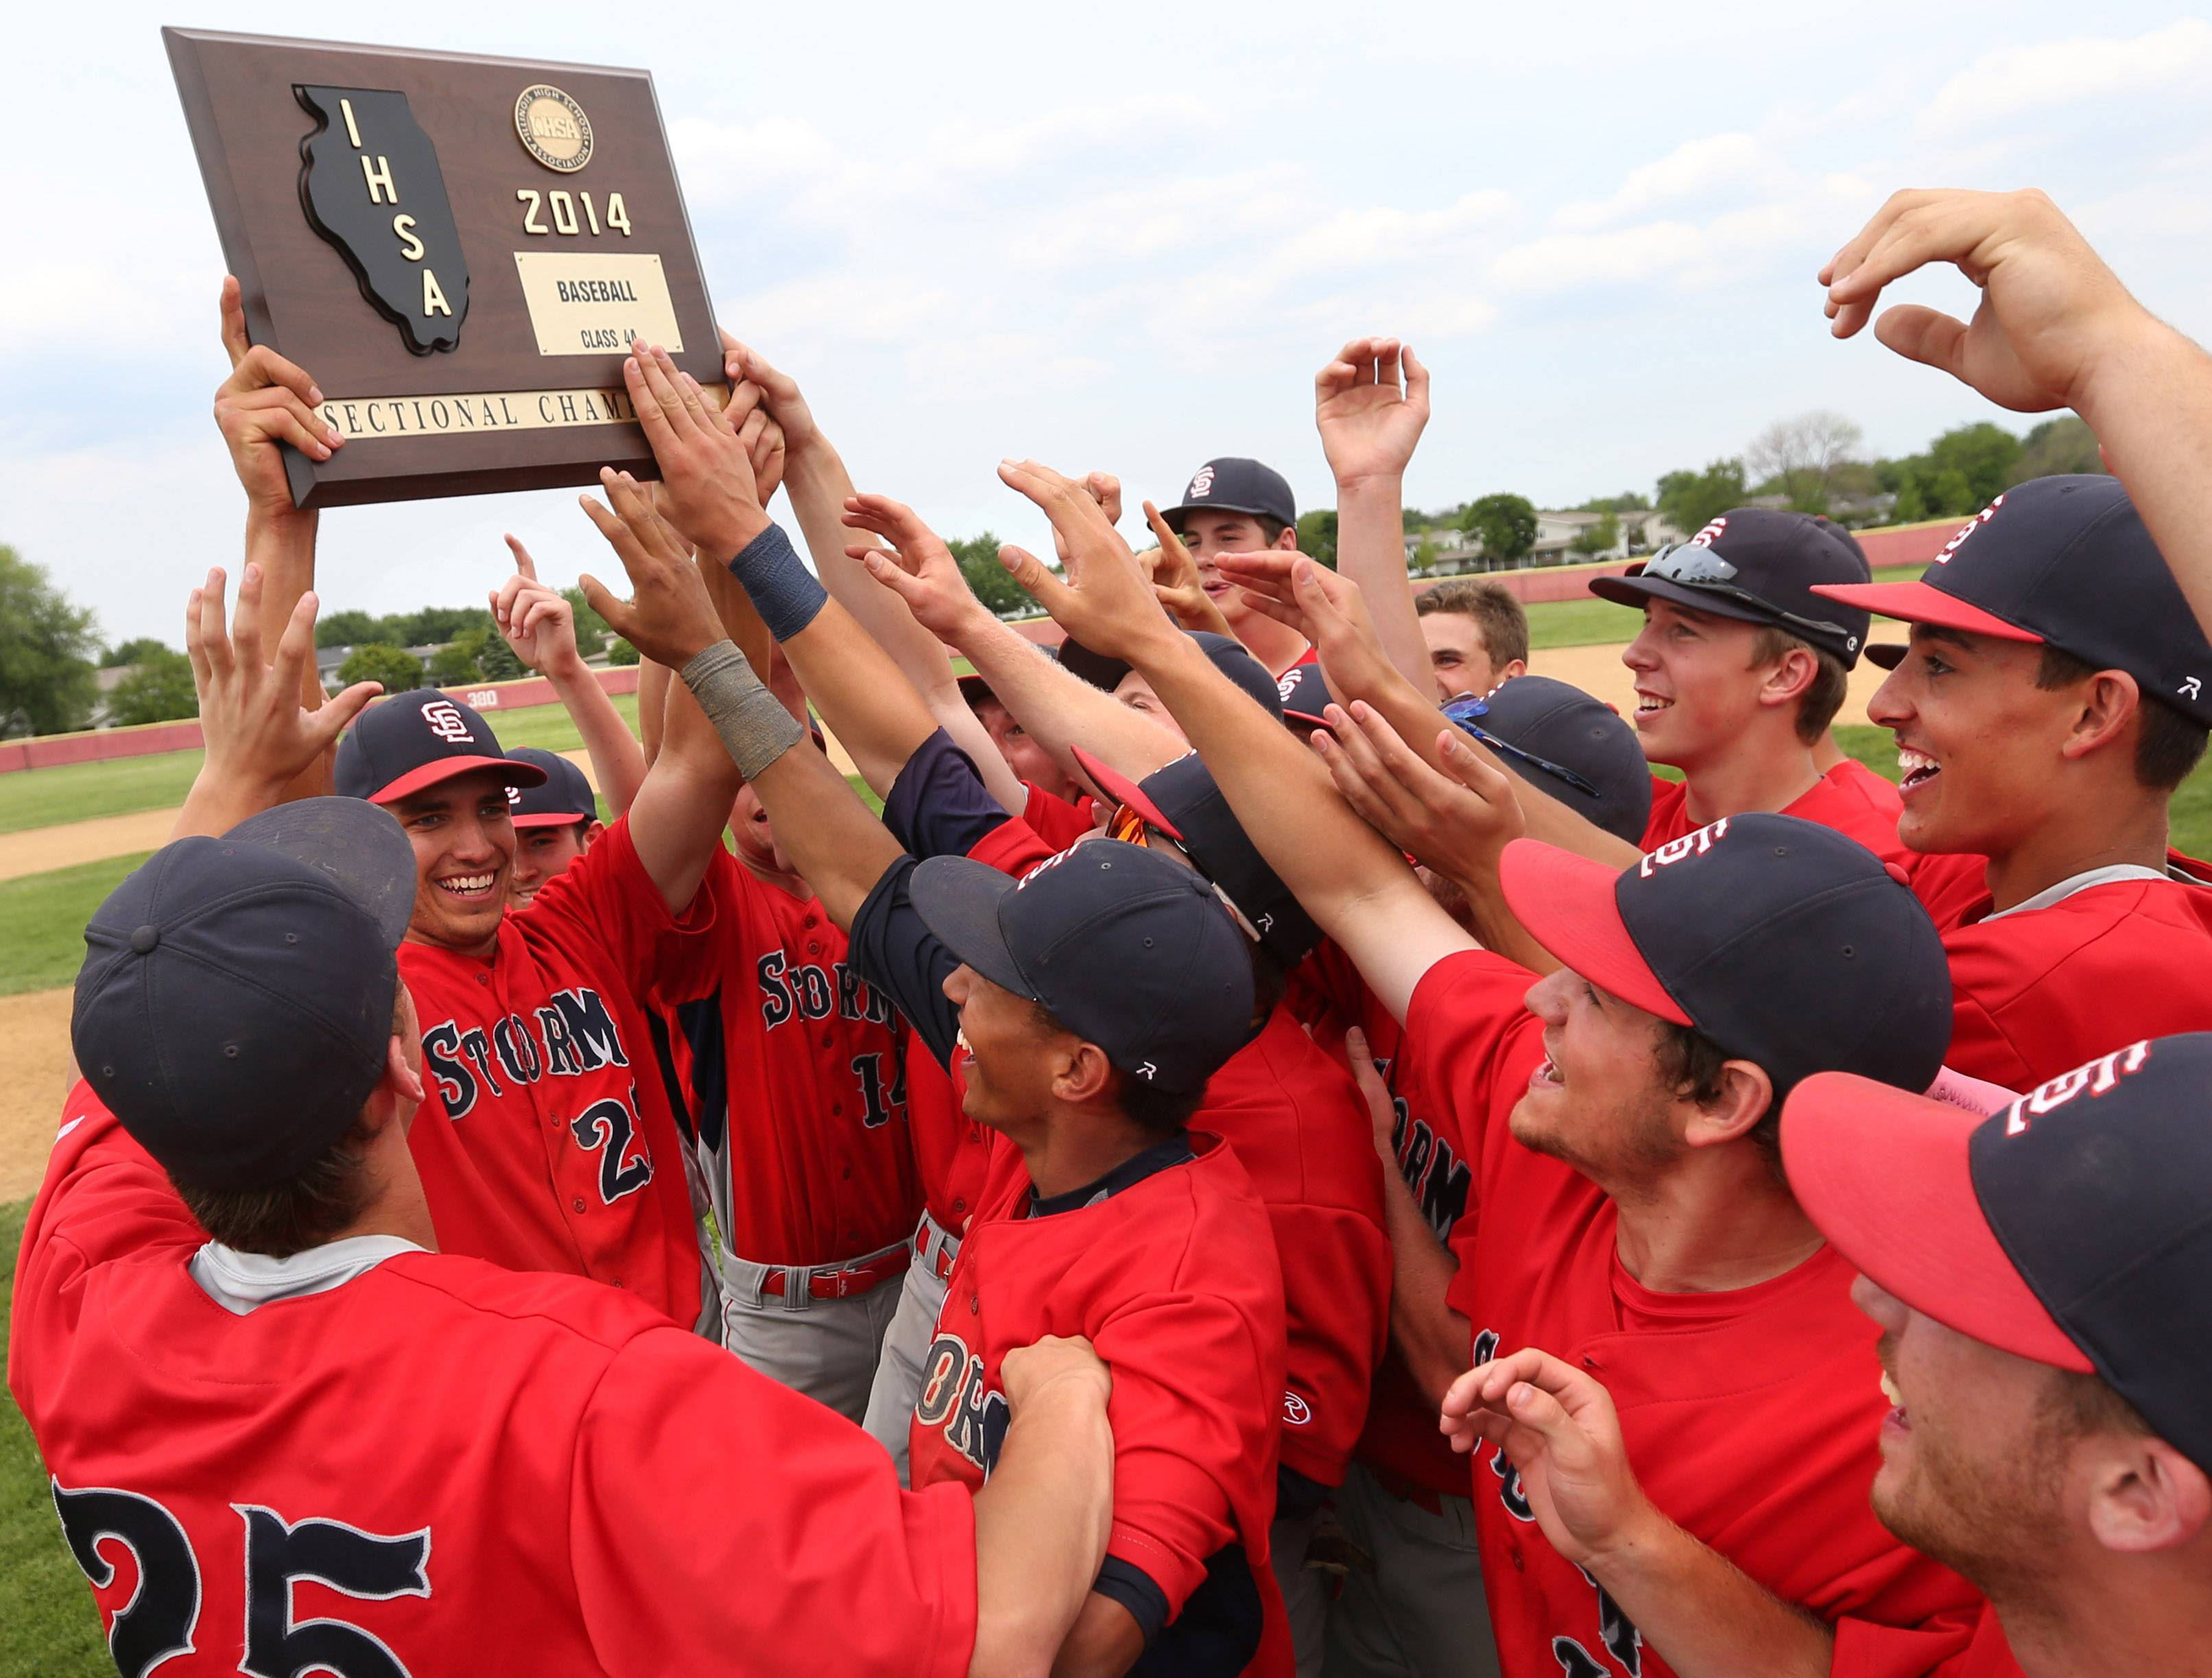 South Elgin's Ryan Nutof holds the sectional plaque for teammates after the Storm's 8-3 win over Batavia in the Schaumburg sectional championship game Saturday.